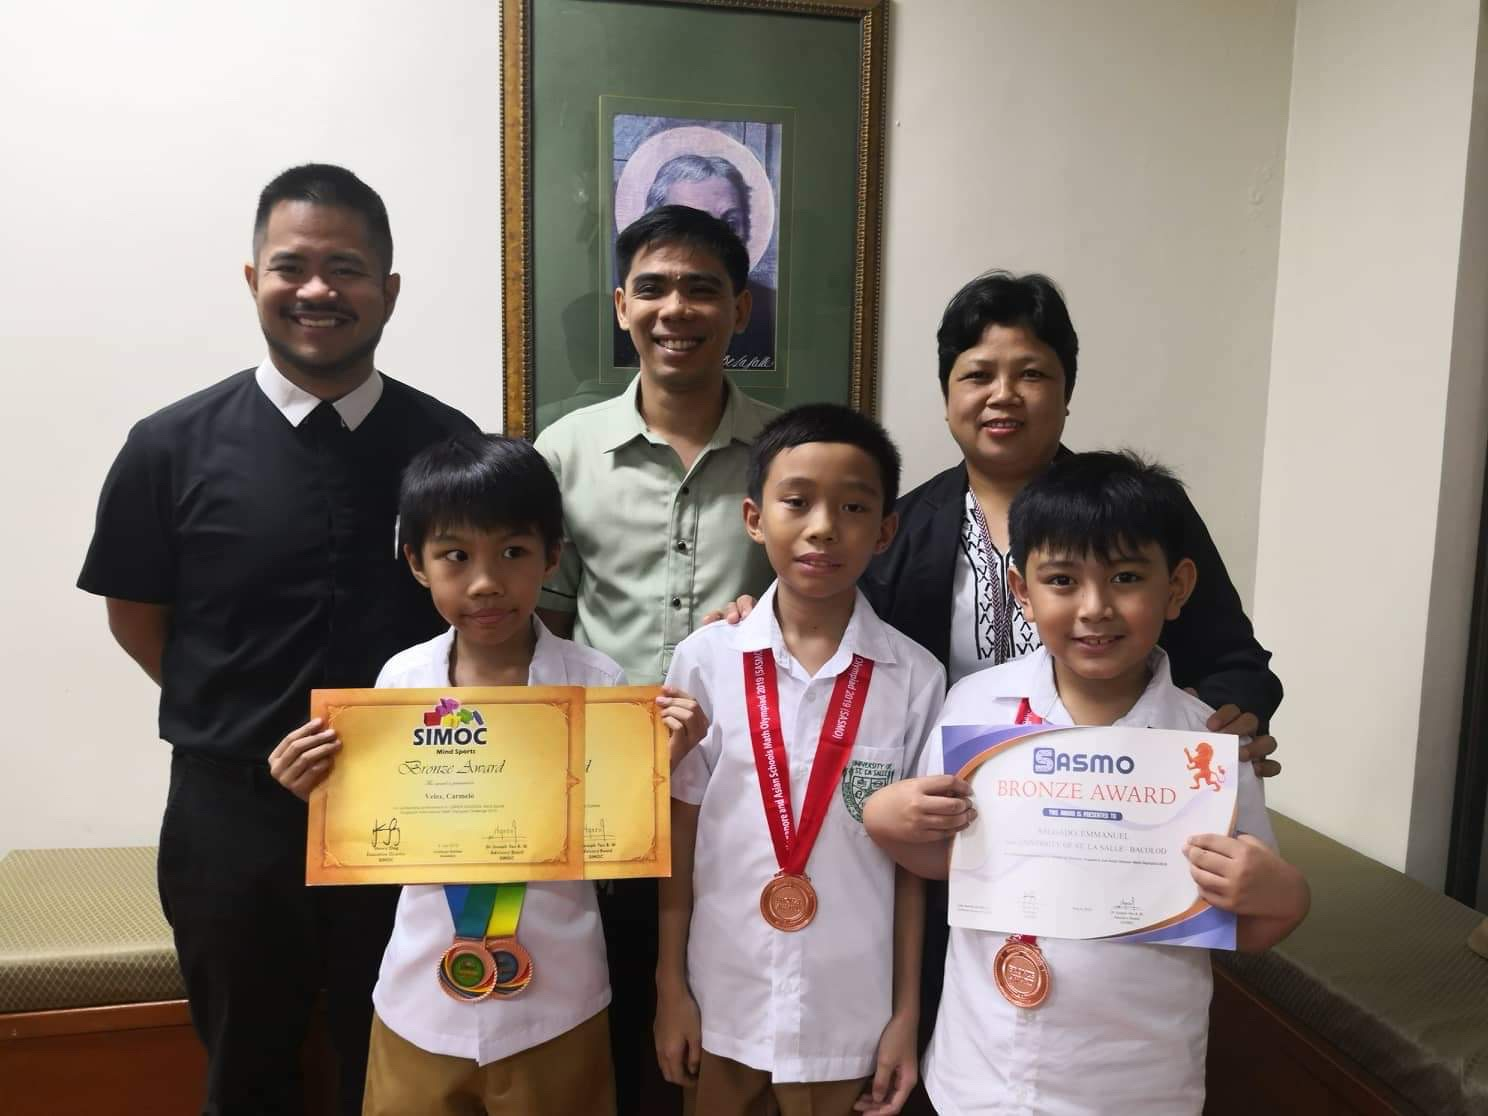 USLS-IS-STUDENTS-WIN-AT-THE-FINALS-OF-THE-5th-SINGAPORE-INTERNATIONAL-MATH-OLYMPIAD-CHALLENGE-SIMOC.JPG